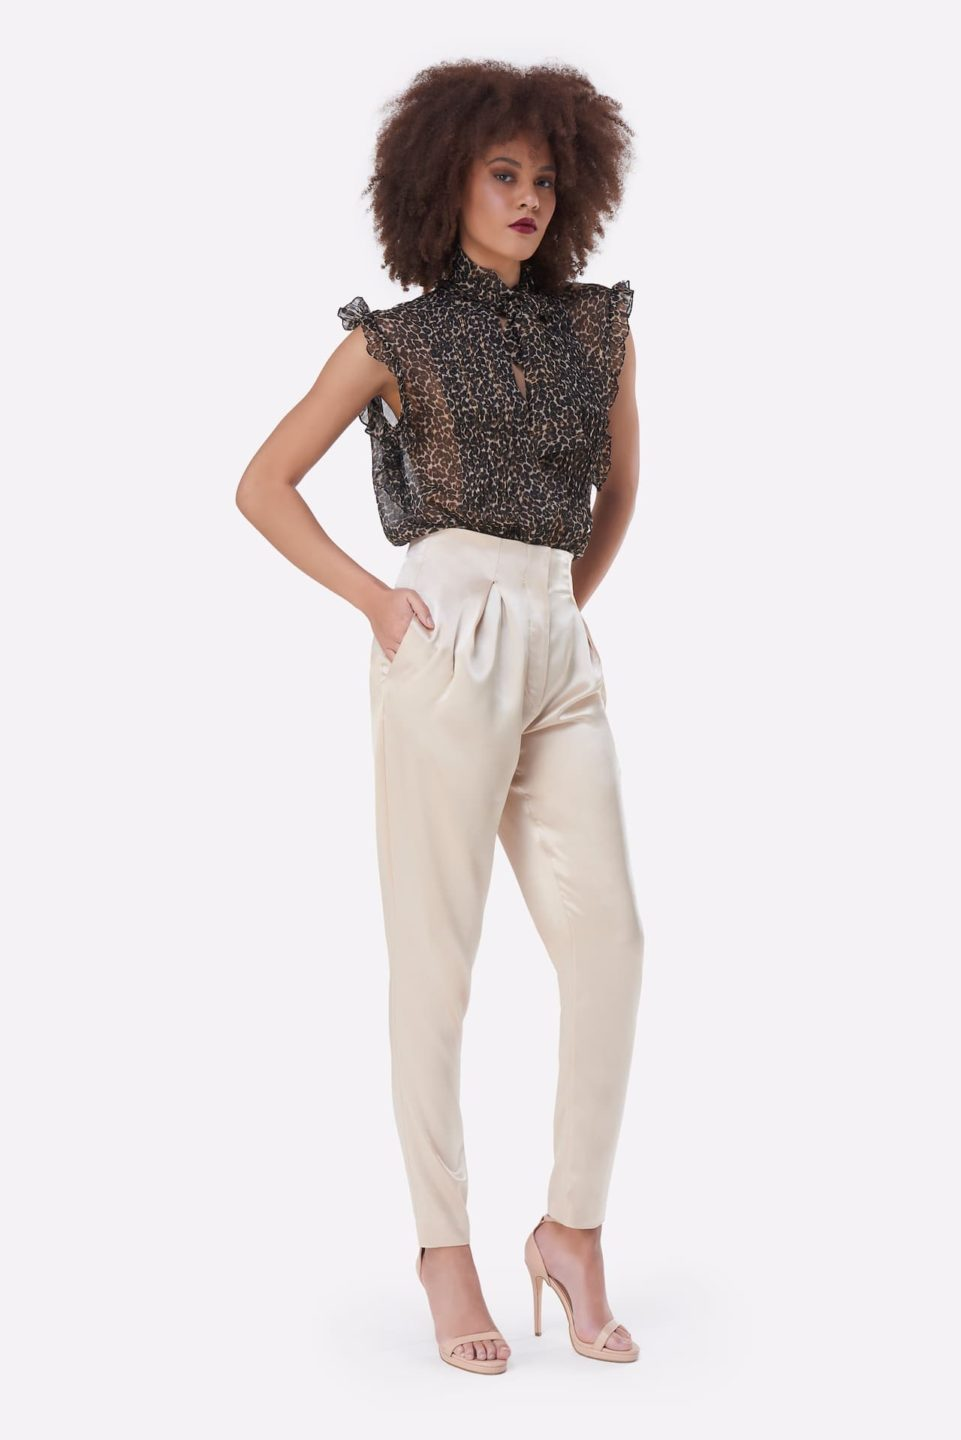 Hollis PS2135 White Satin High-Waisted Tapered Pants with Pleated Detail